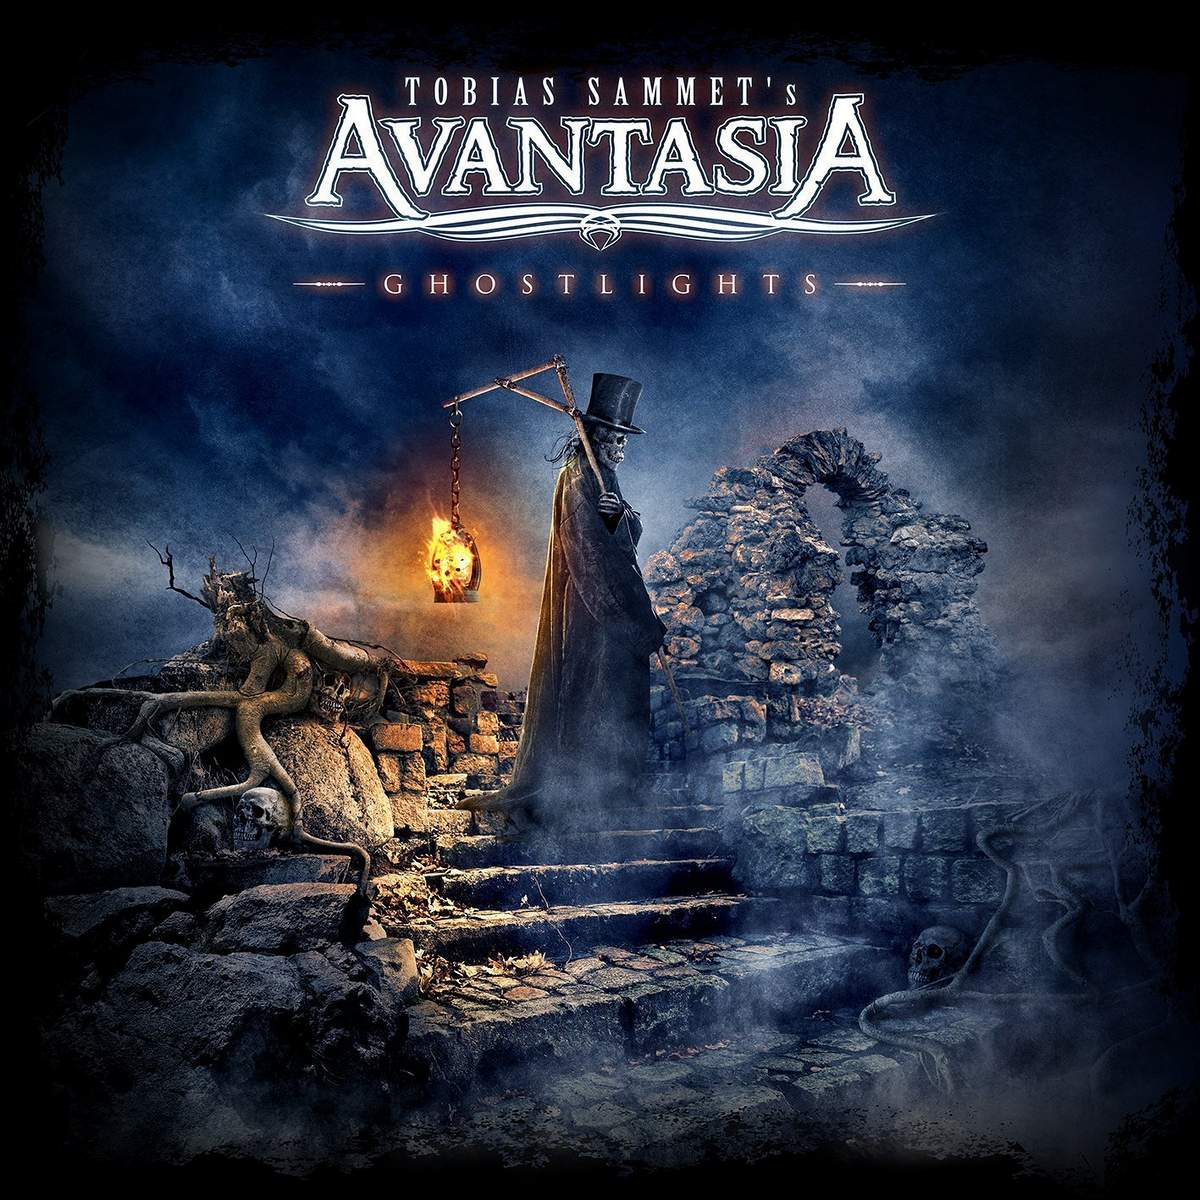 Avantasia: Ghostlights (2016) Book Cover